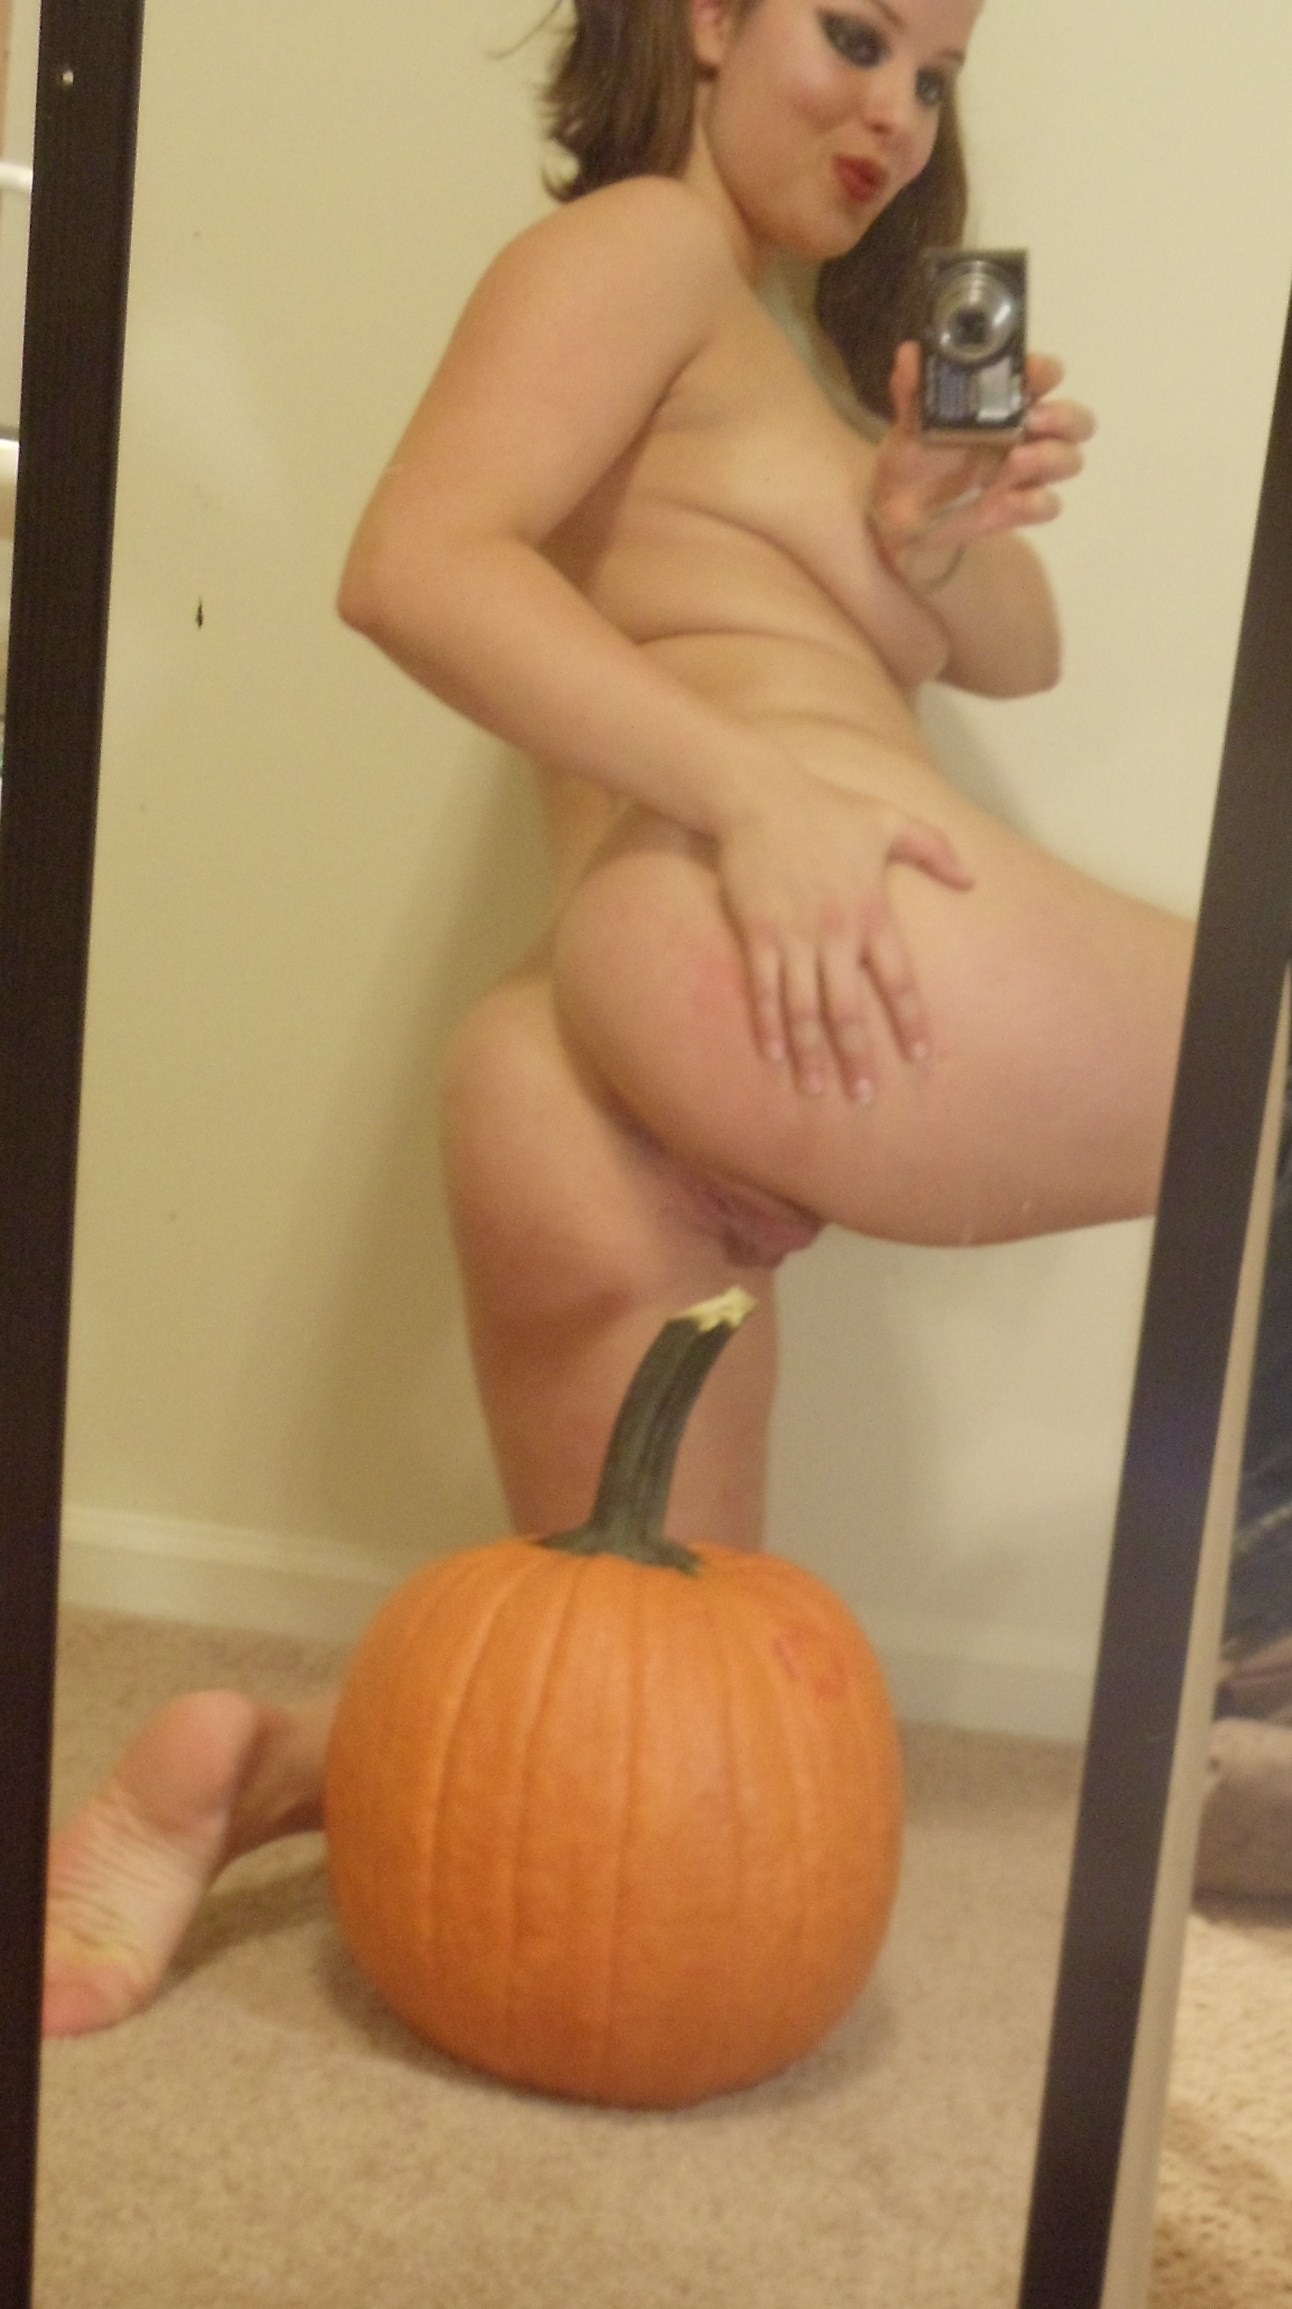 Fat woman pictures sex